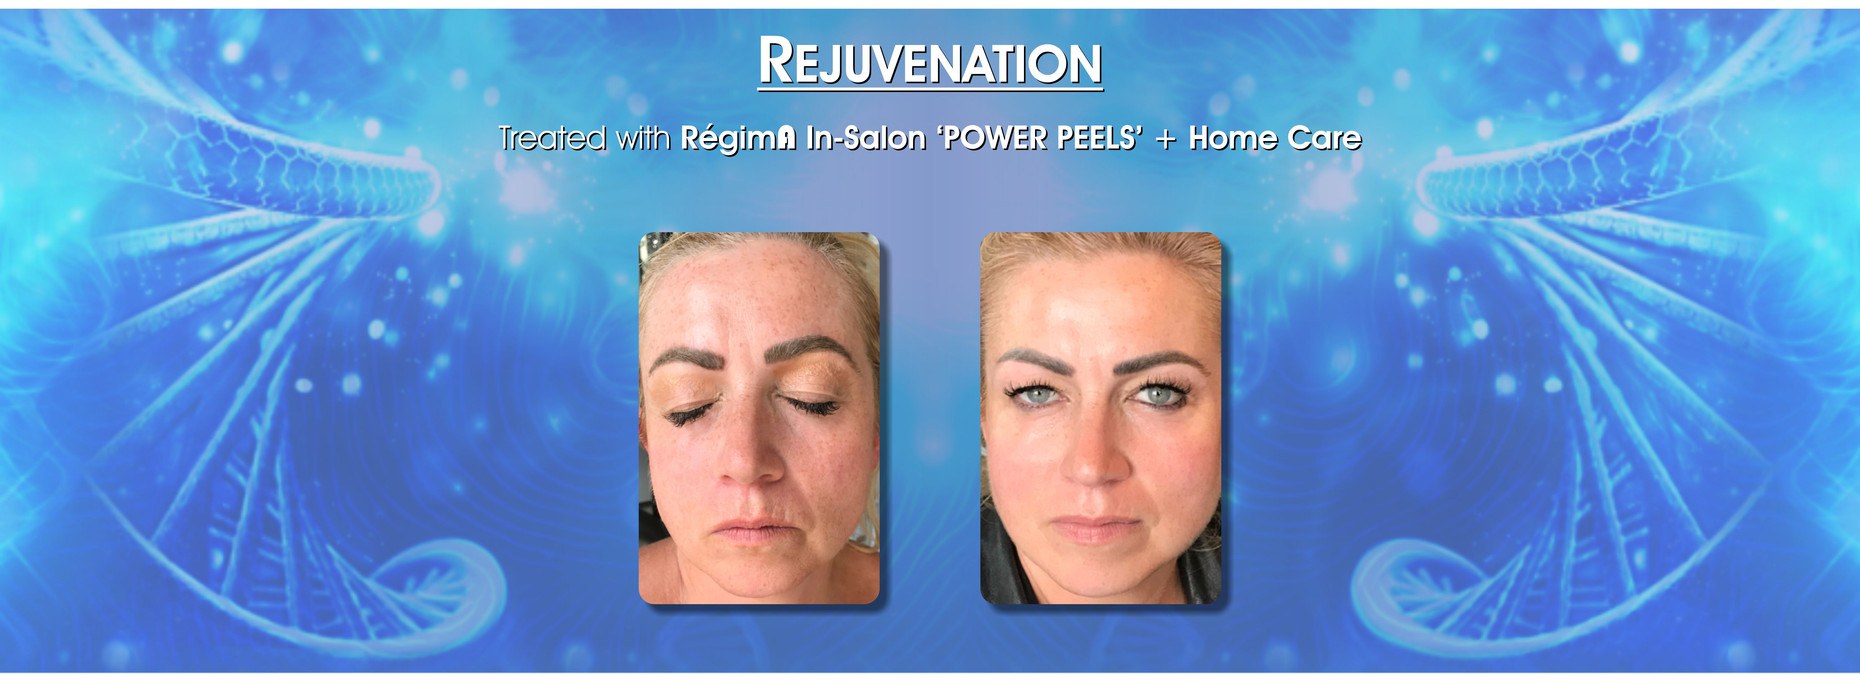 Skin Care rejuvenation